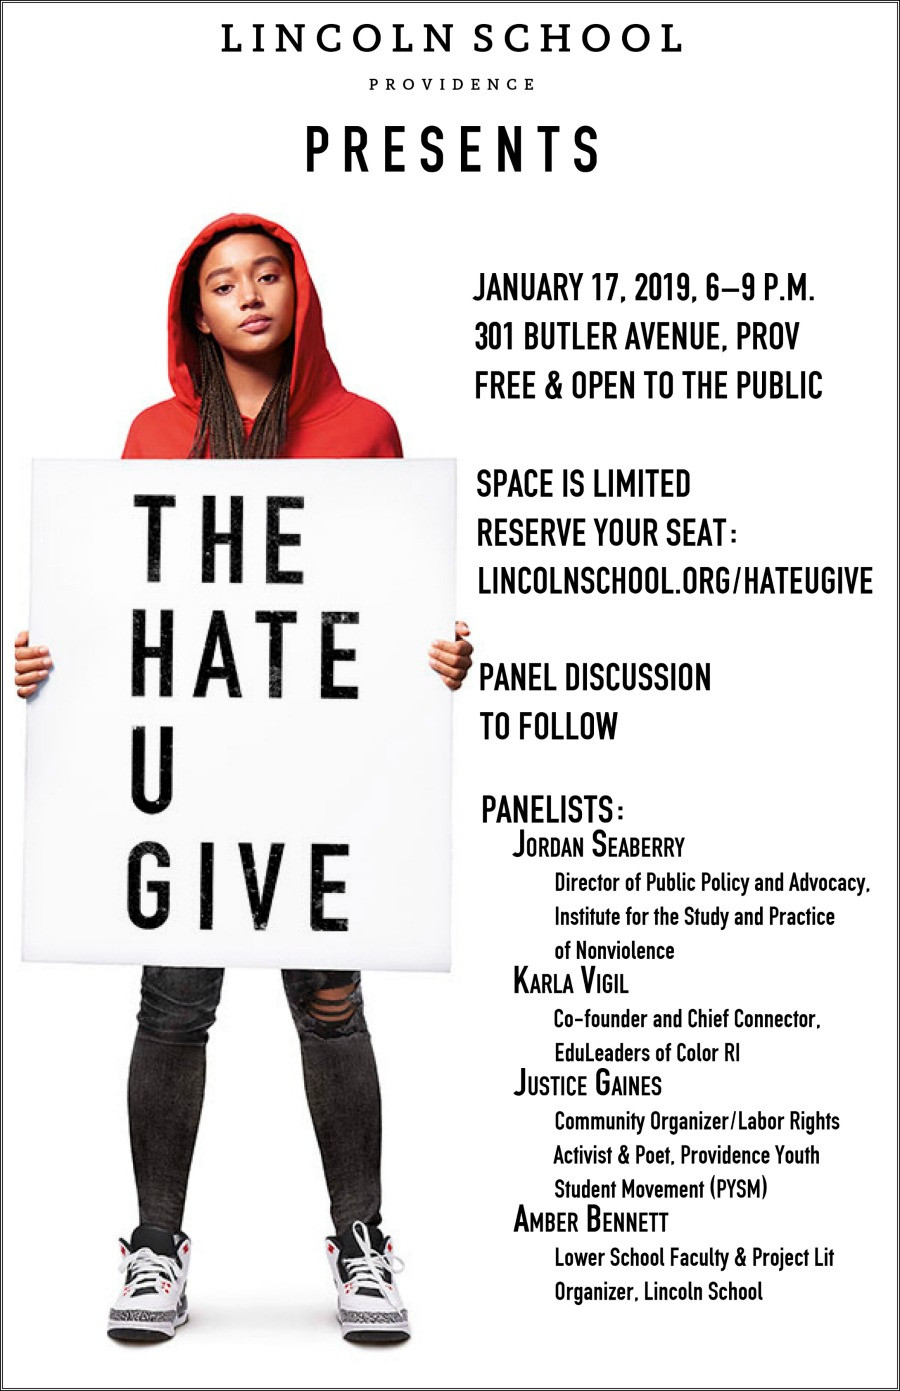 The Hate U Give Movie Screening | January 17 | 6 p.m. | Free and open to the public